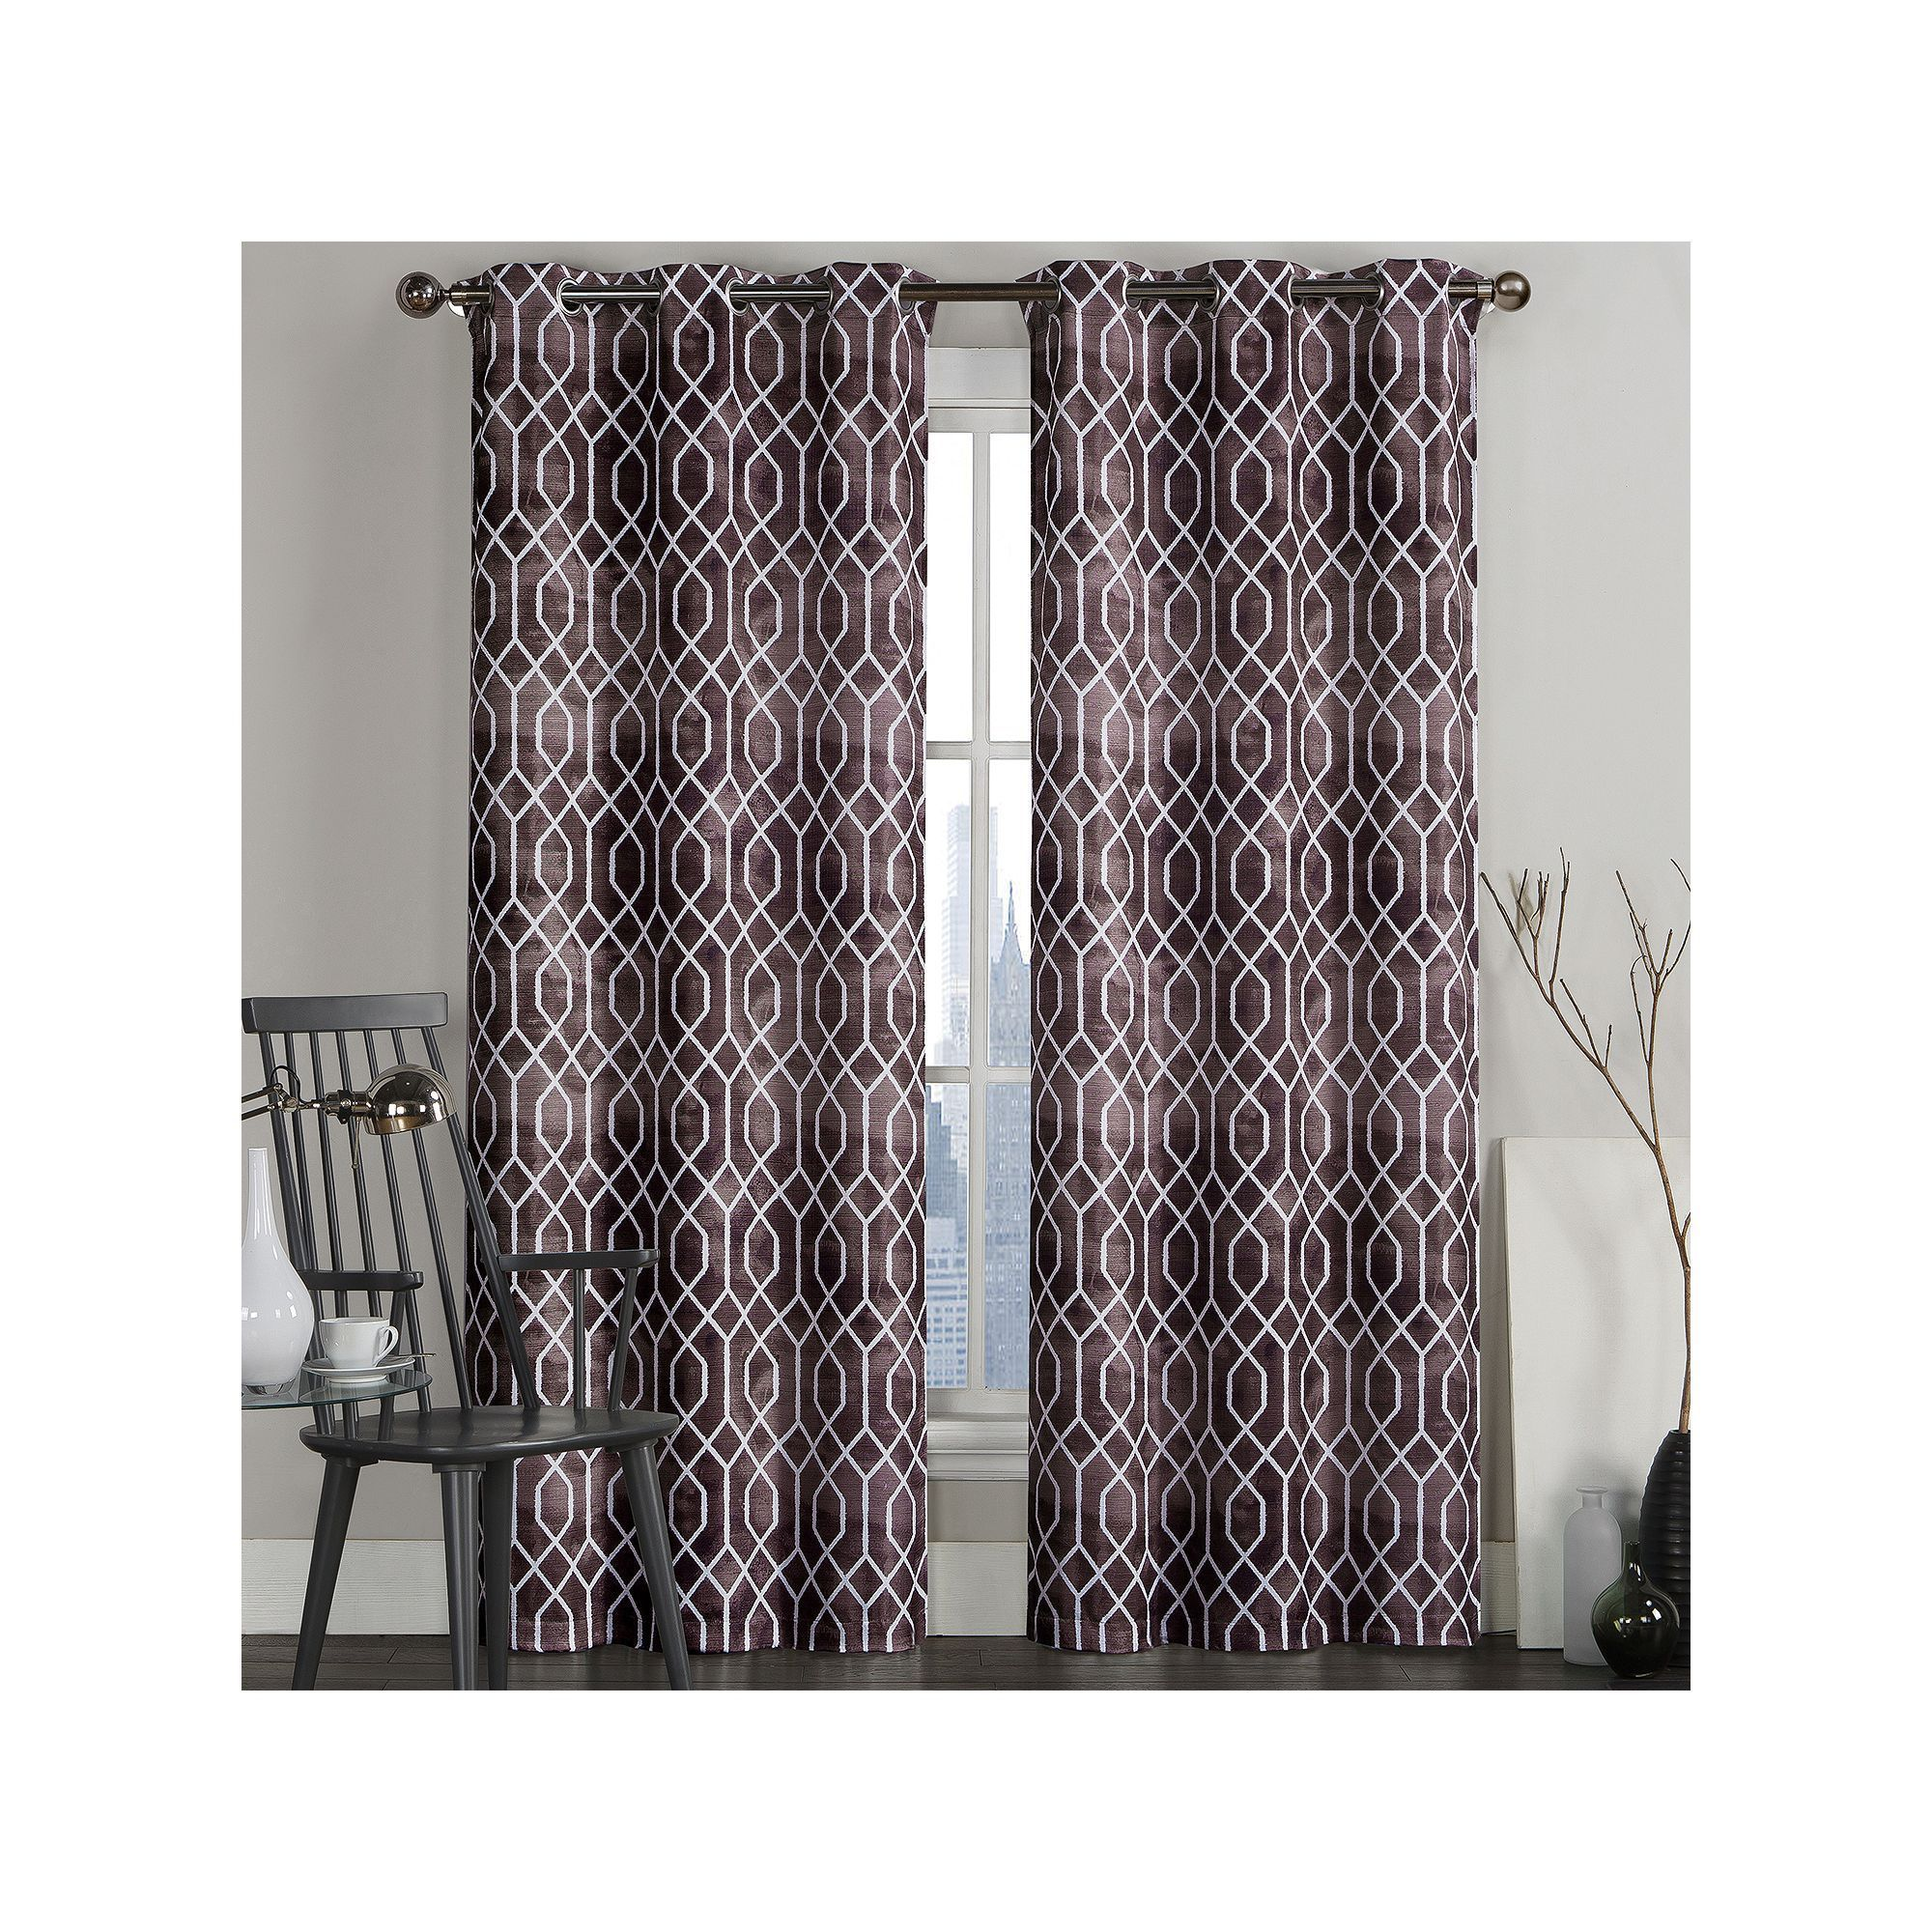 Paper curtains design curtains living room bohono sew curtains